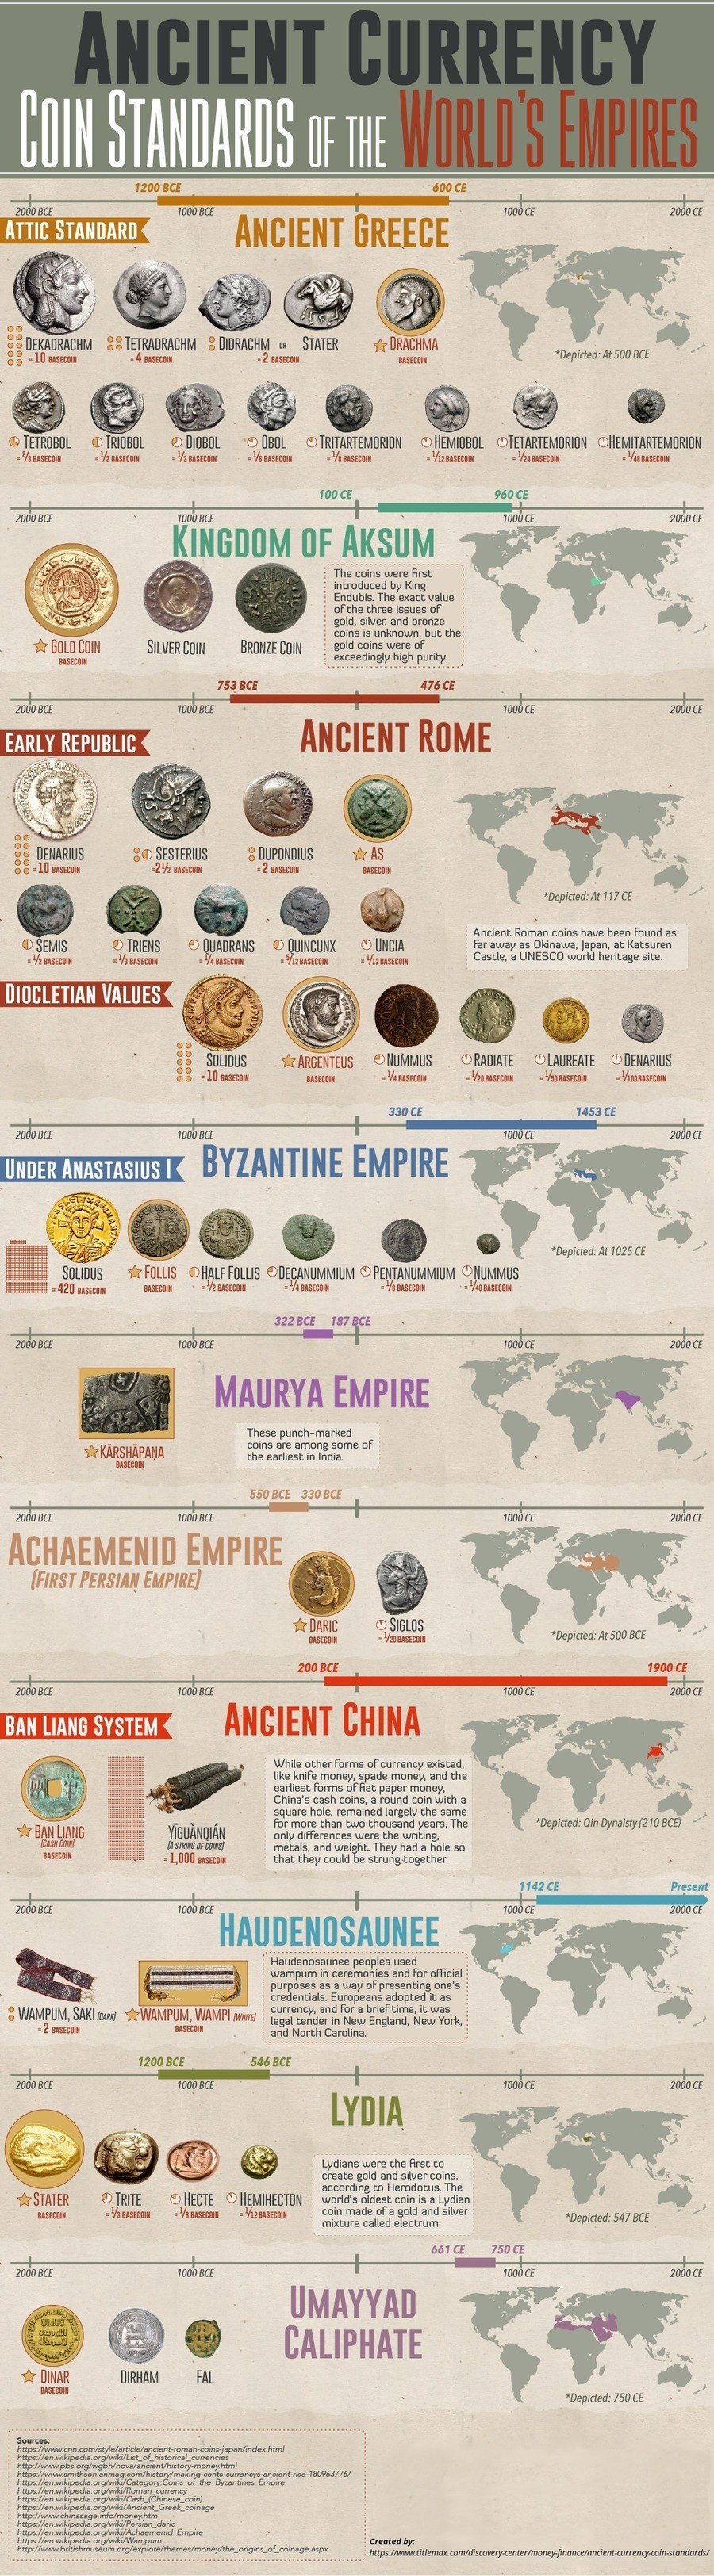 Ancient Currency: Coin Standards of the World's Empires. Before there were crisp dollar bills as currency, things were much different in the world. If you look